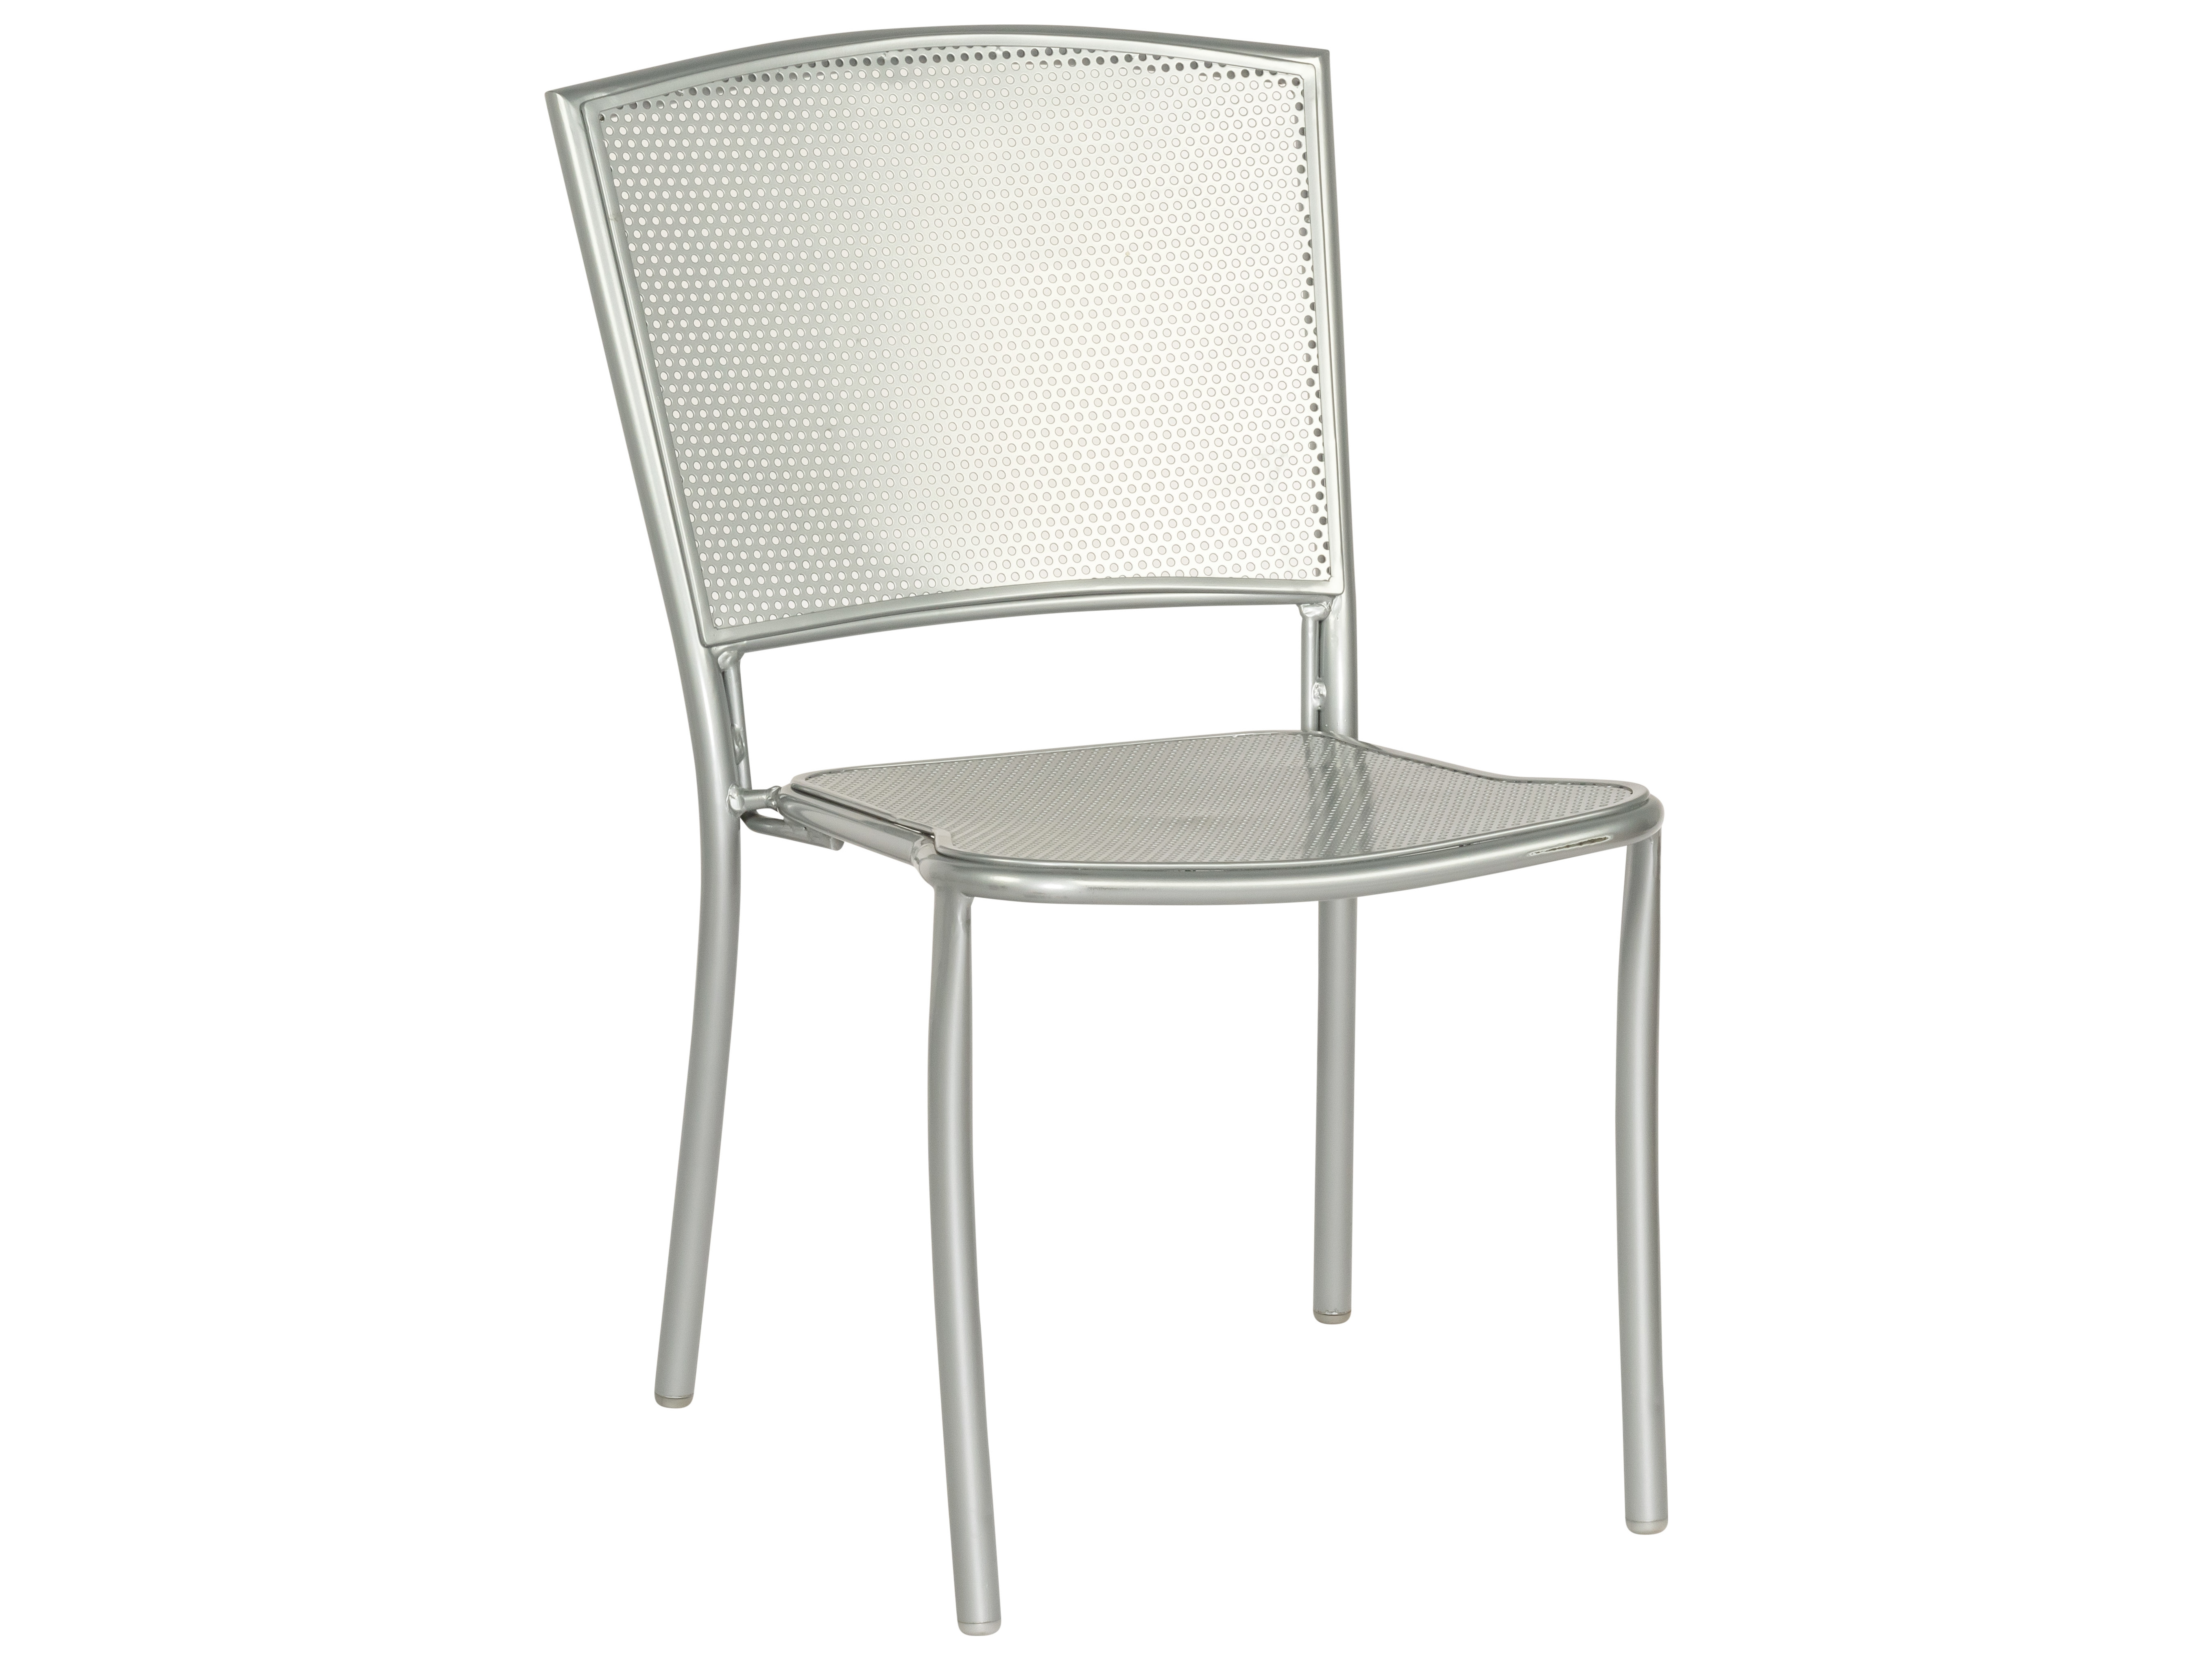 Woodard Albion Wrought Iron Silver Mercury Stackable Dining Side Chair Wr7r0022 17